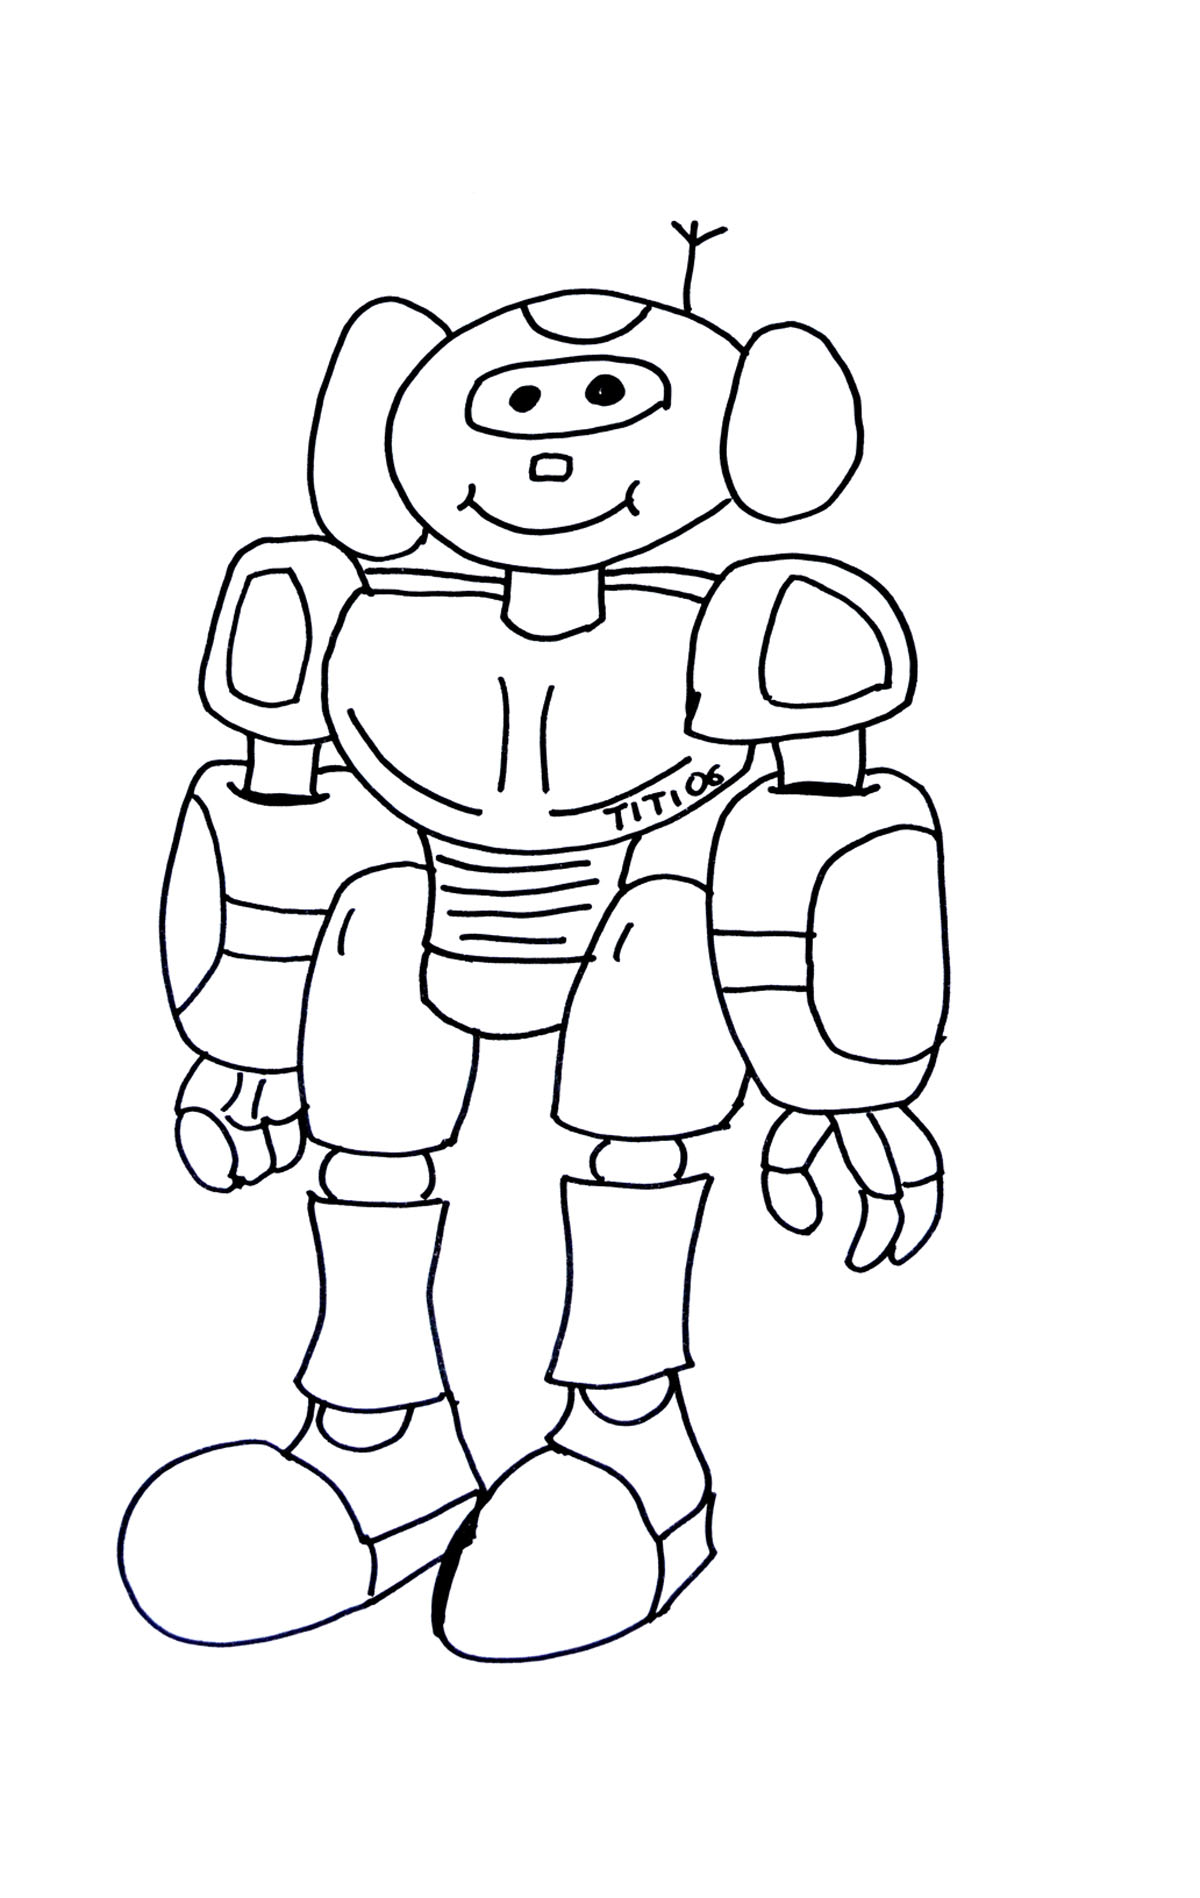 Simple Robot Drawing at GetDrawings.com | Free for personal use ...